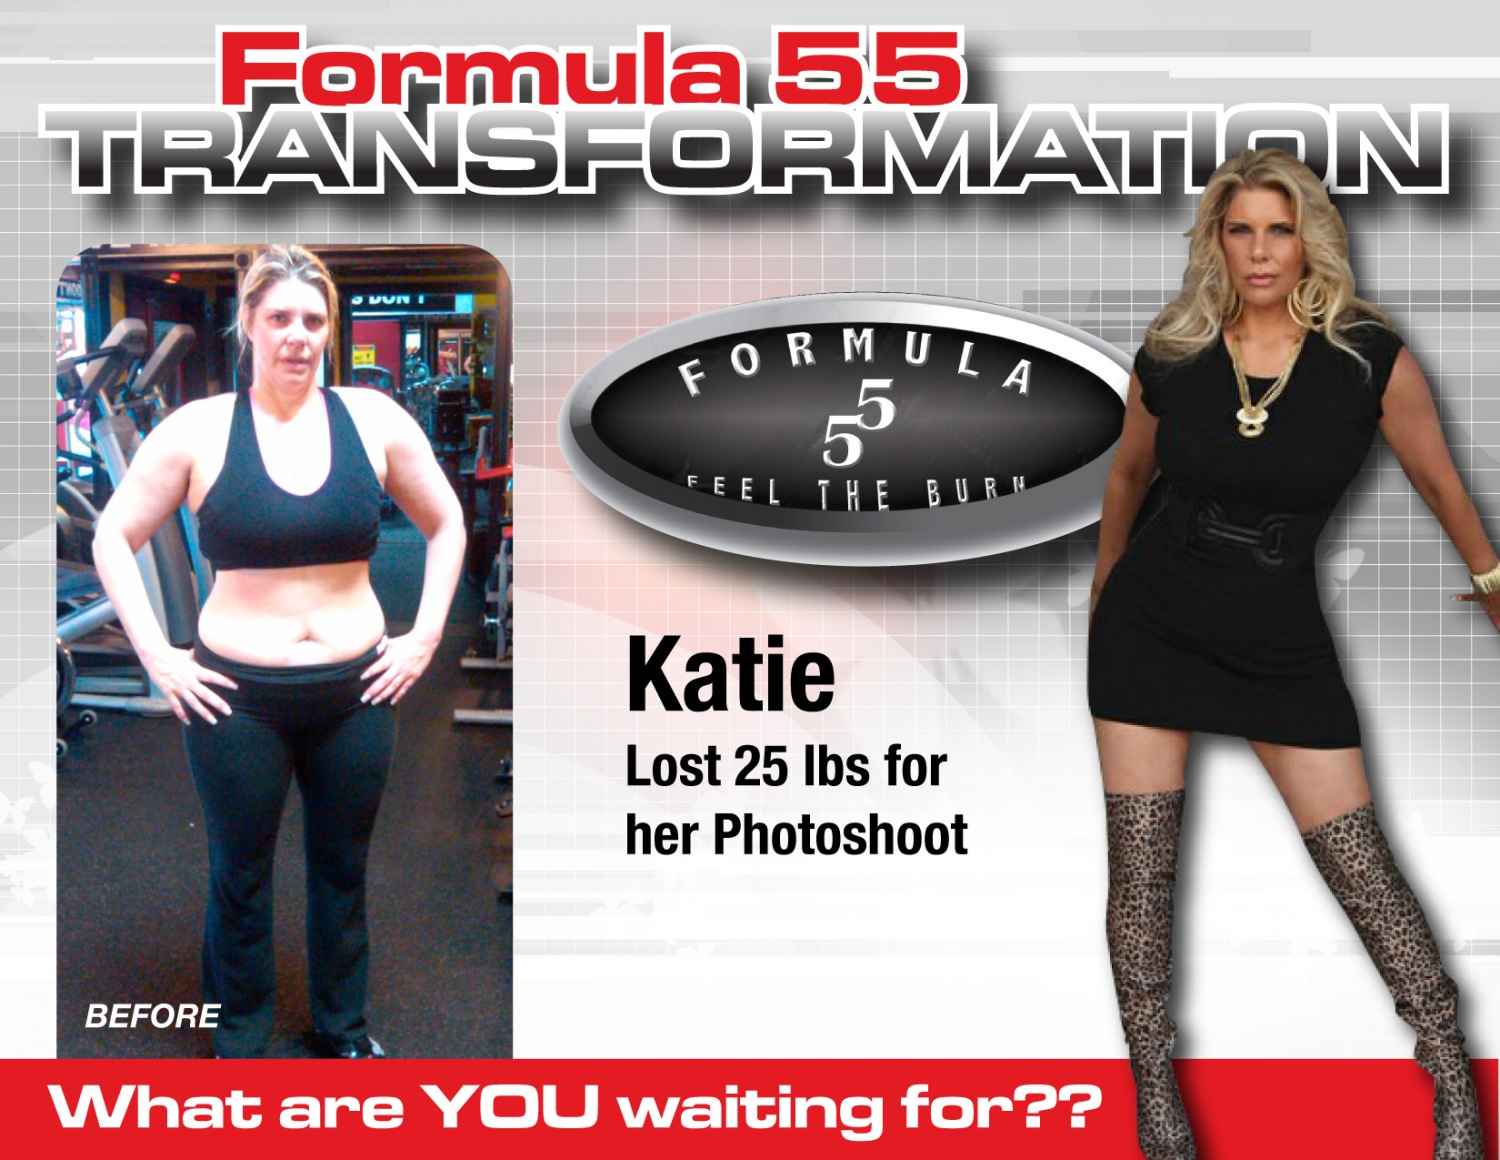 form_55_Transformation_Katie.jpg